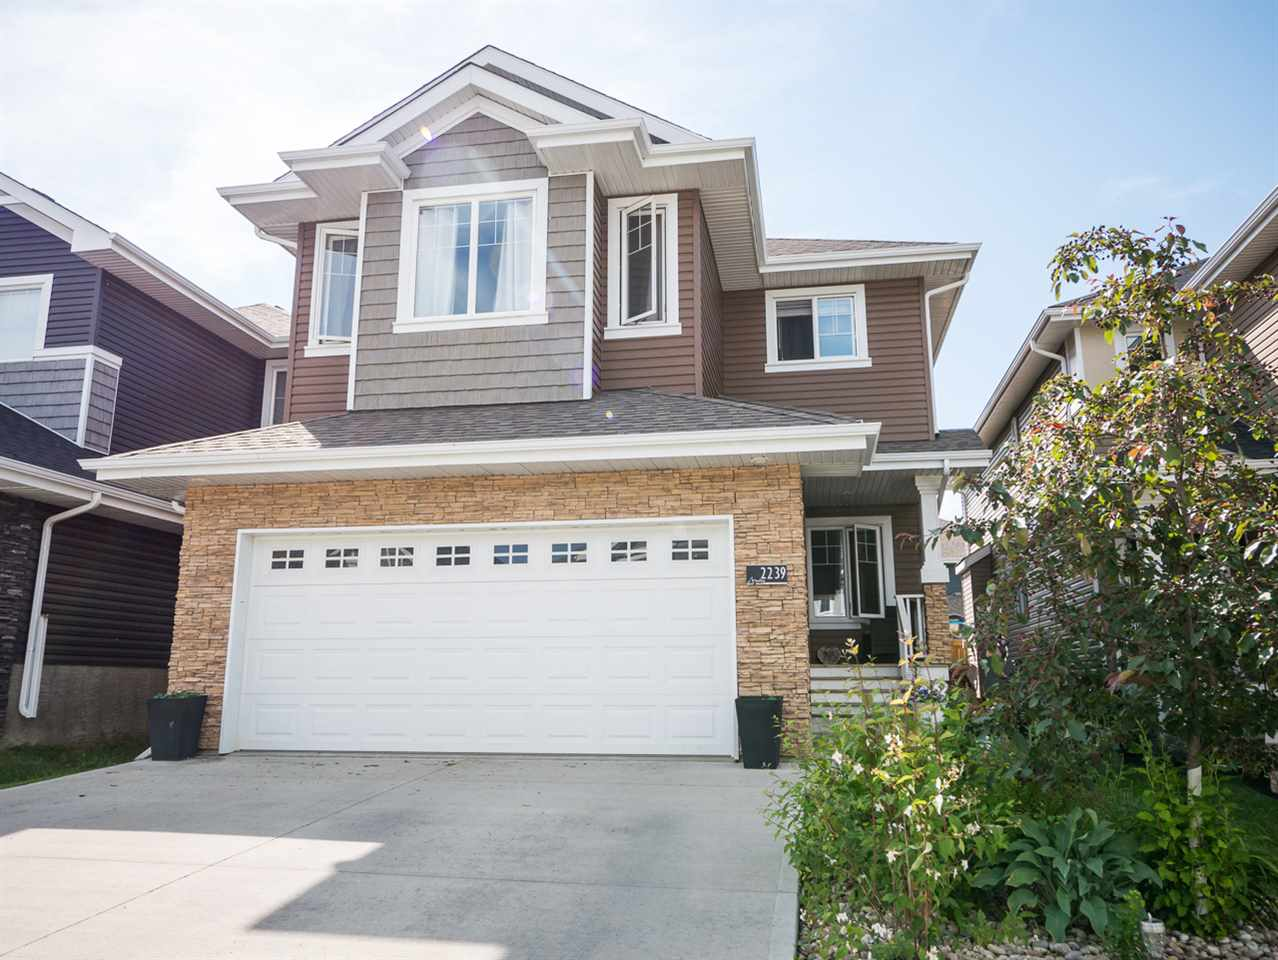 Main Photo: 2239 BLUE JAY Landing in Edmonton: Zone 59 House for sale : MLS(r) # E4071131